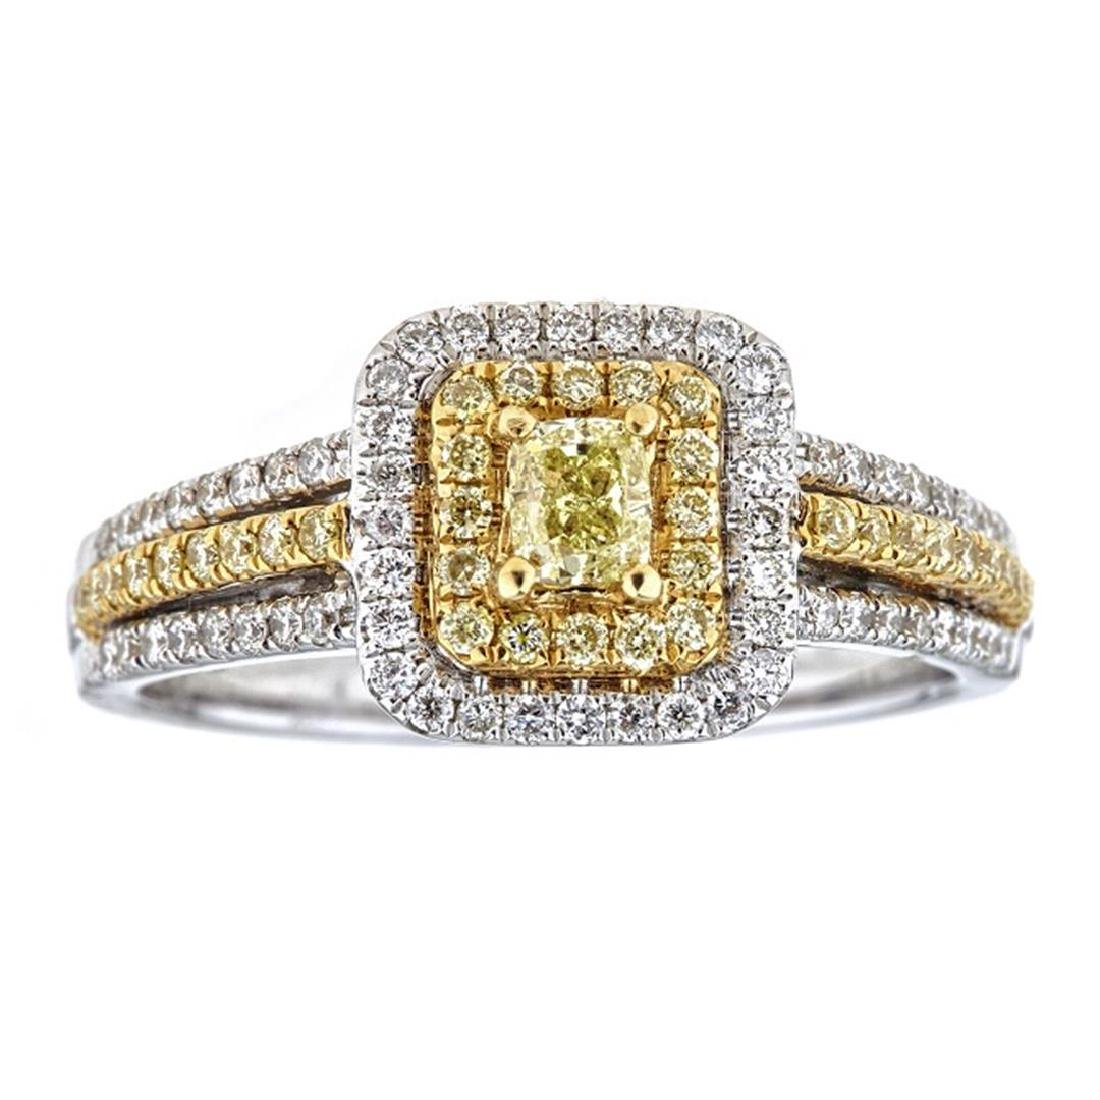 0.77 ctw Yellow and White Diamond Ring - 18KT White and